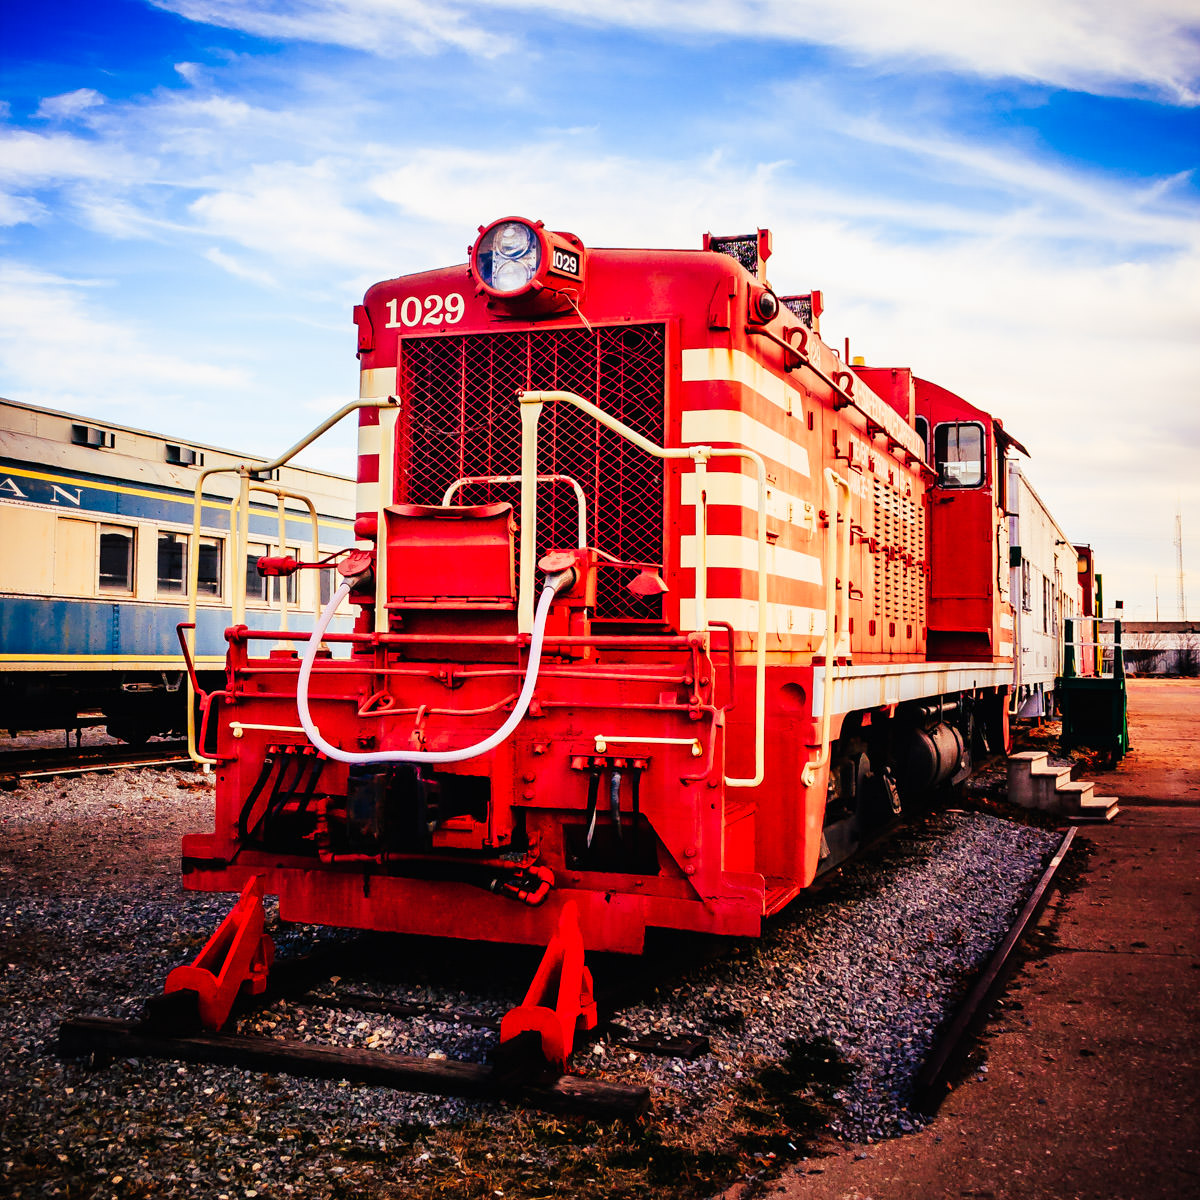 A GM NW-2 diesel-electric switch engine once operated by the Missouri-Kansas-Texas Railroad (The Katy) now in the collection of the Wichita Falls Railroad Museum, Wichita Falls, Texas.